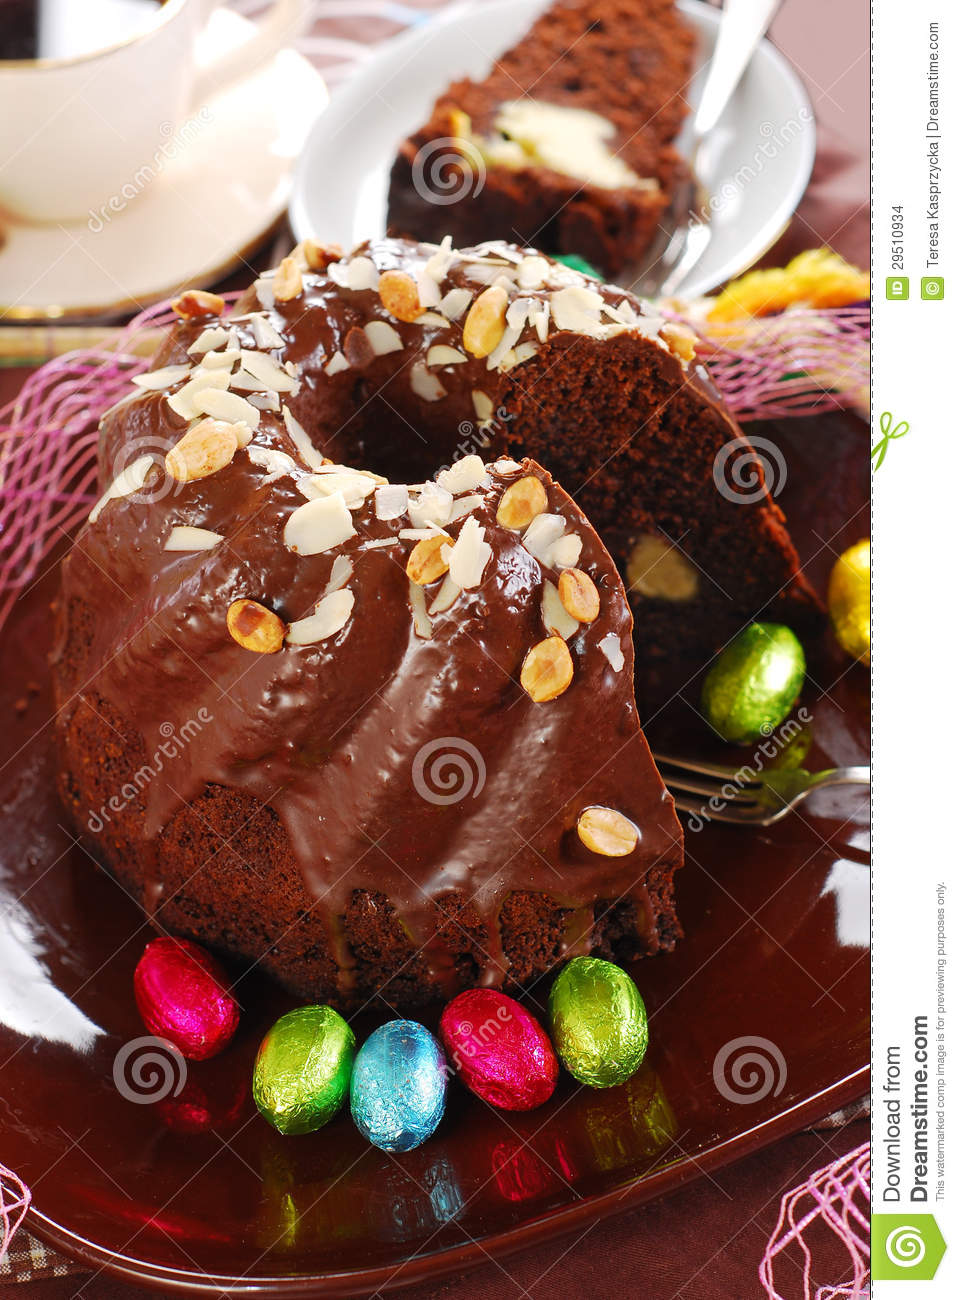 Chocolate Ring Cake With Almonds And Nuts Topping For Easter Stock ...